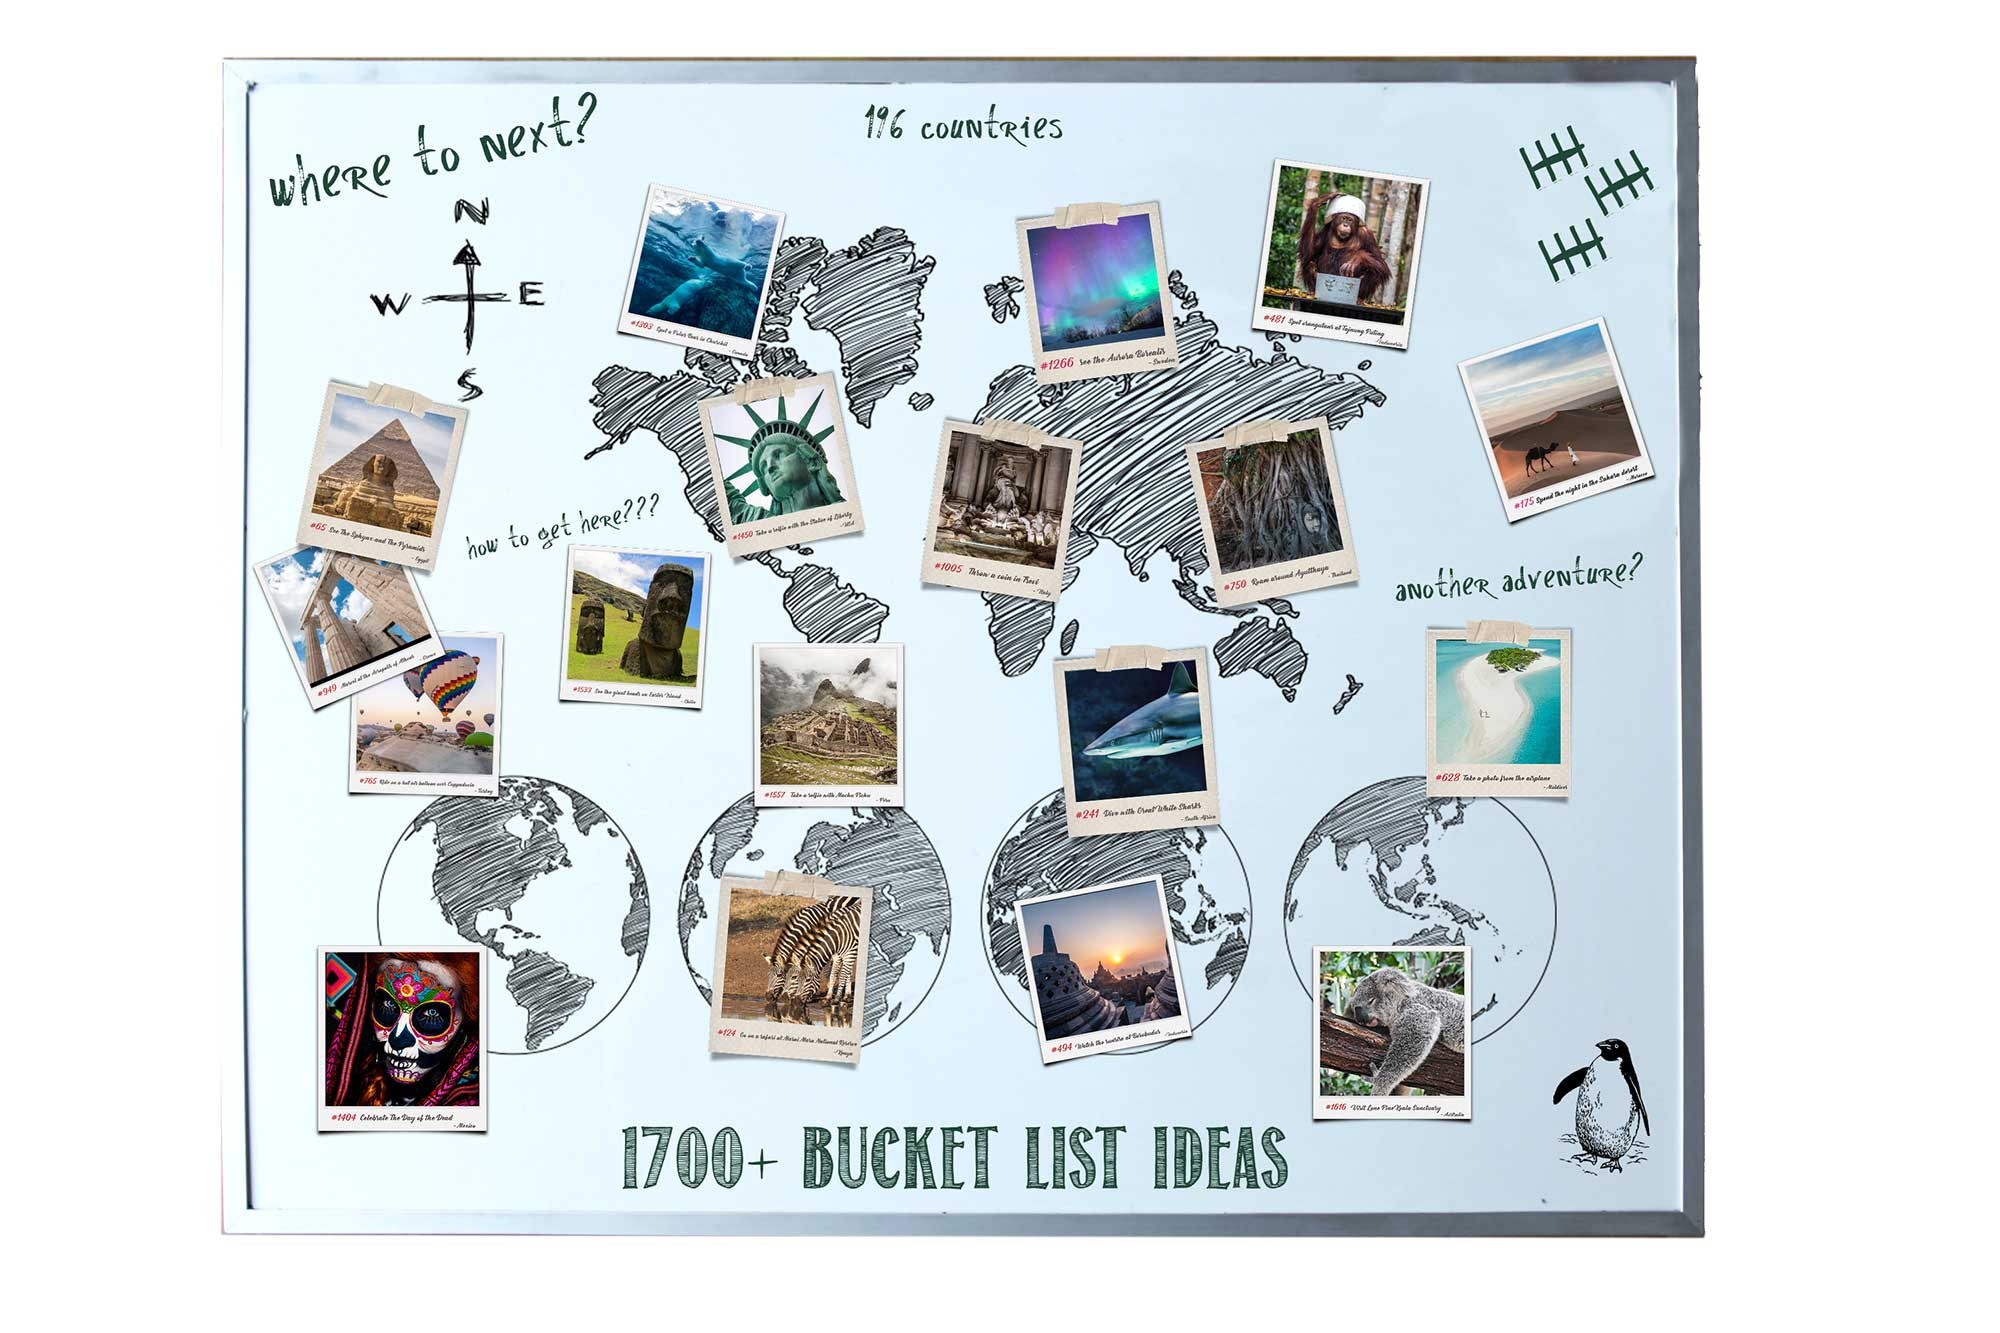 my cool bucket list ideas - whiteboard